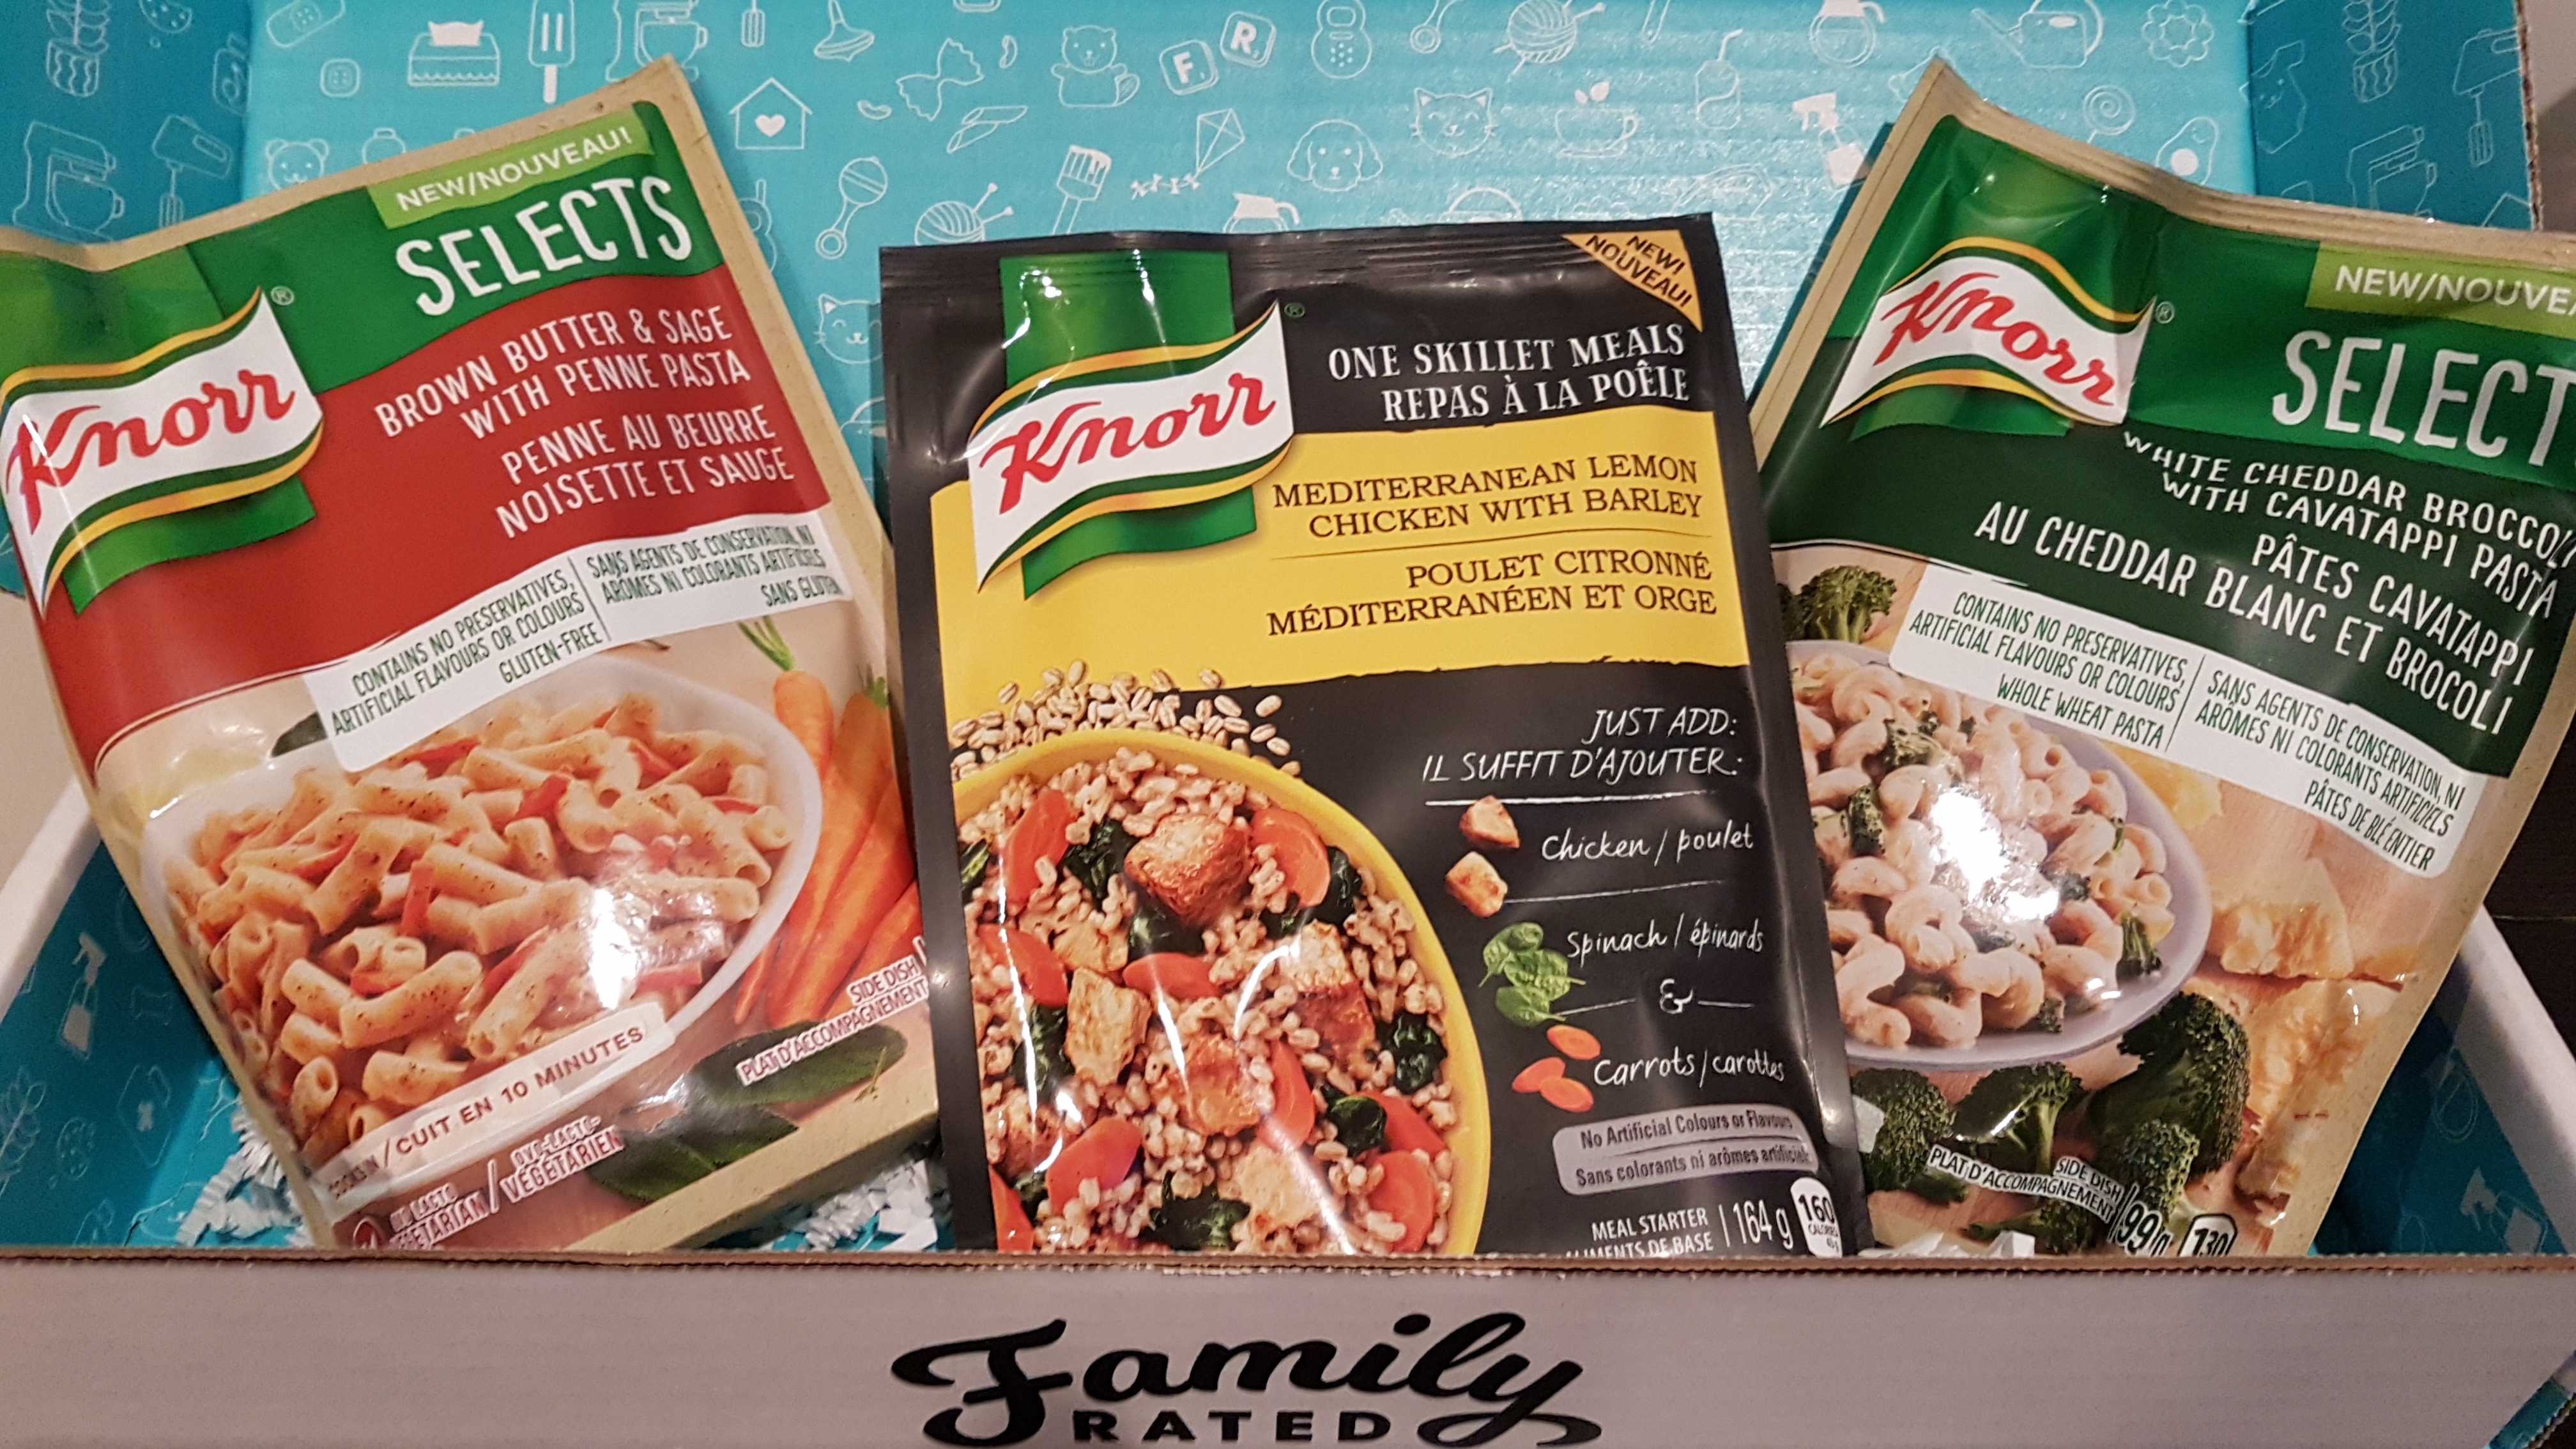 Knorr Selects White Cheddar Amp Broccoli Rice Reviews In